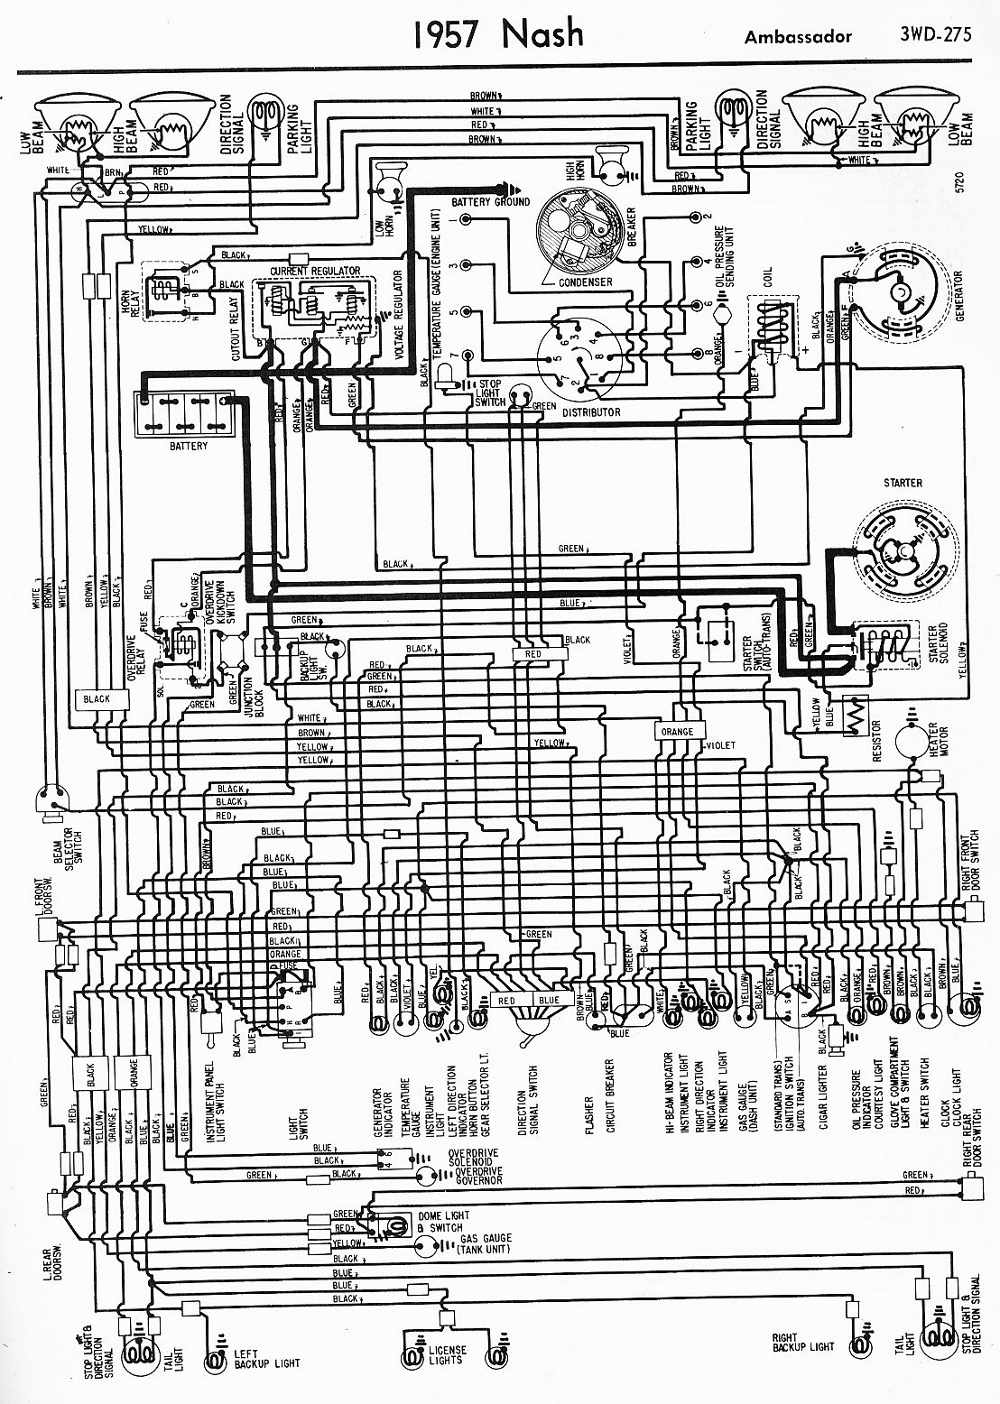 wiring diagrams of 1957 nash ambassador dual xd7500 wiring diagram dolgular com dual xd7500 wiring diagram at bayanpartner.co